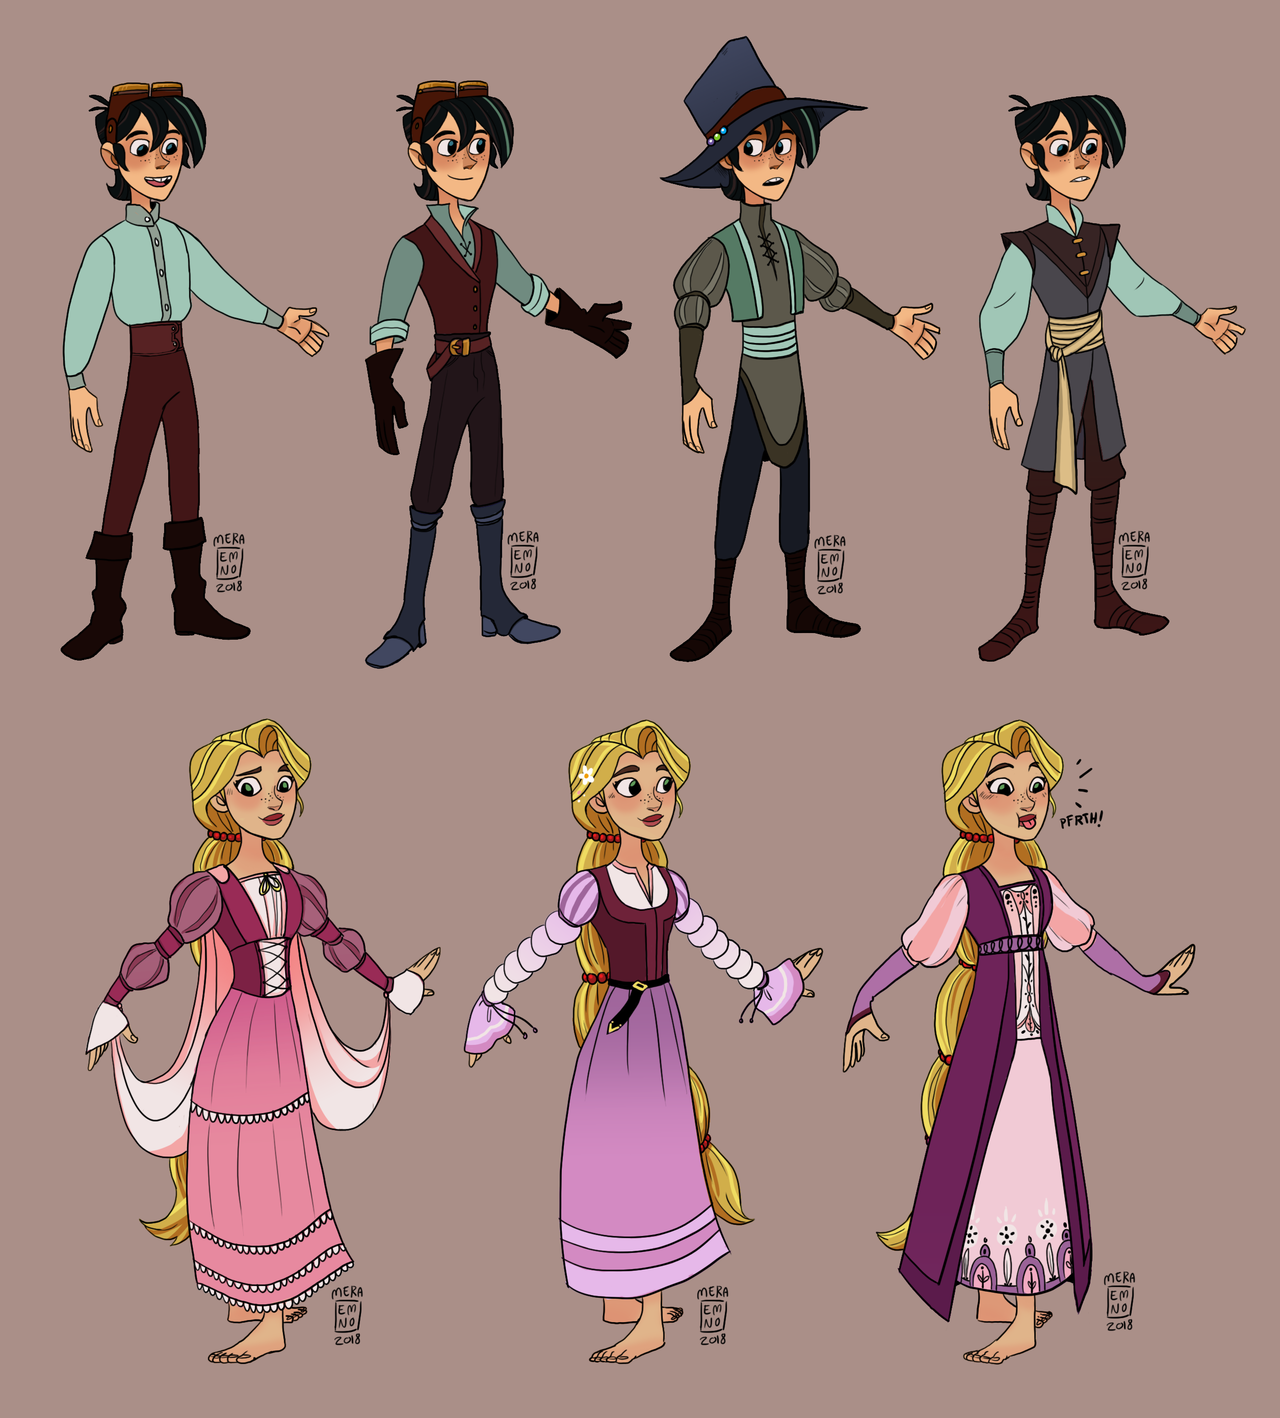 Varian And Rapunzel In Renaissance Clothing